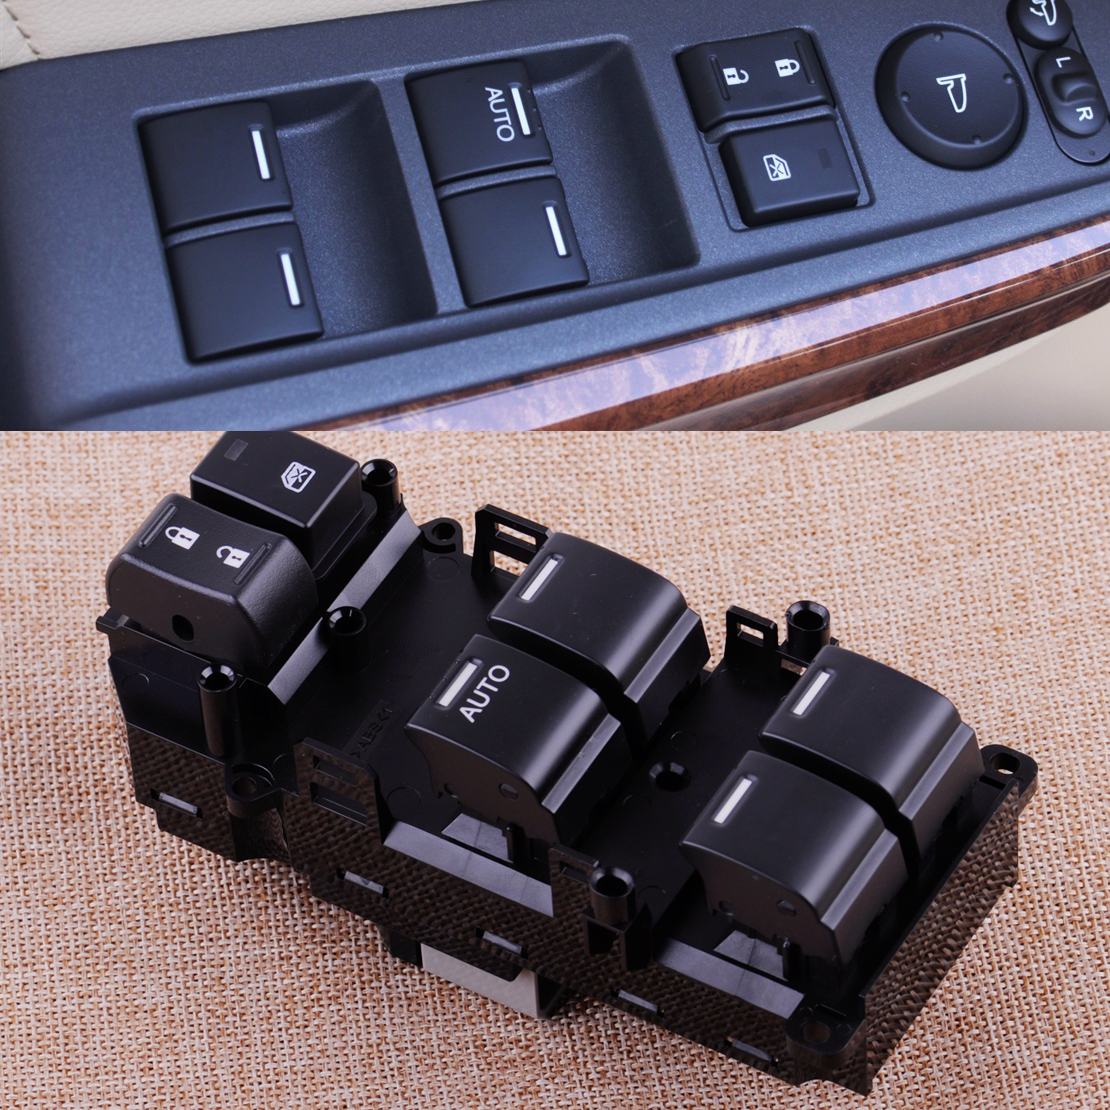 CITALL 35750-TBD-H13 Front Left Driver Side Master Power Window Switch Fit for Honda Accord 2008 2009 2010 2011 for hyundai elantra front left driver side master power window switch 2001 02 03 04 05 2006 93570 2d000